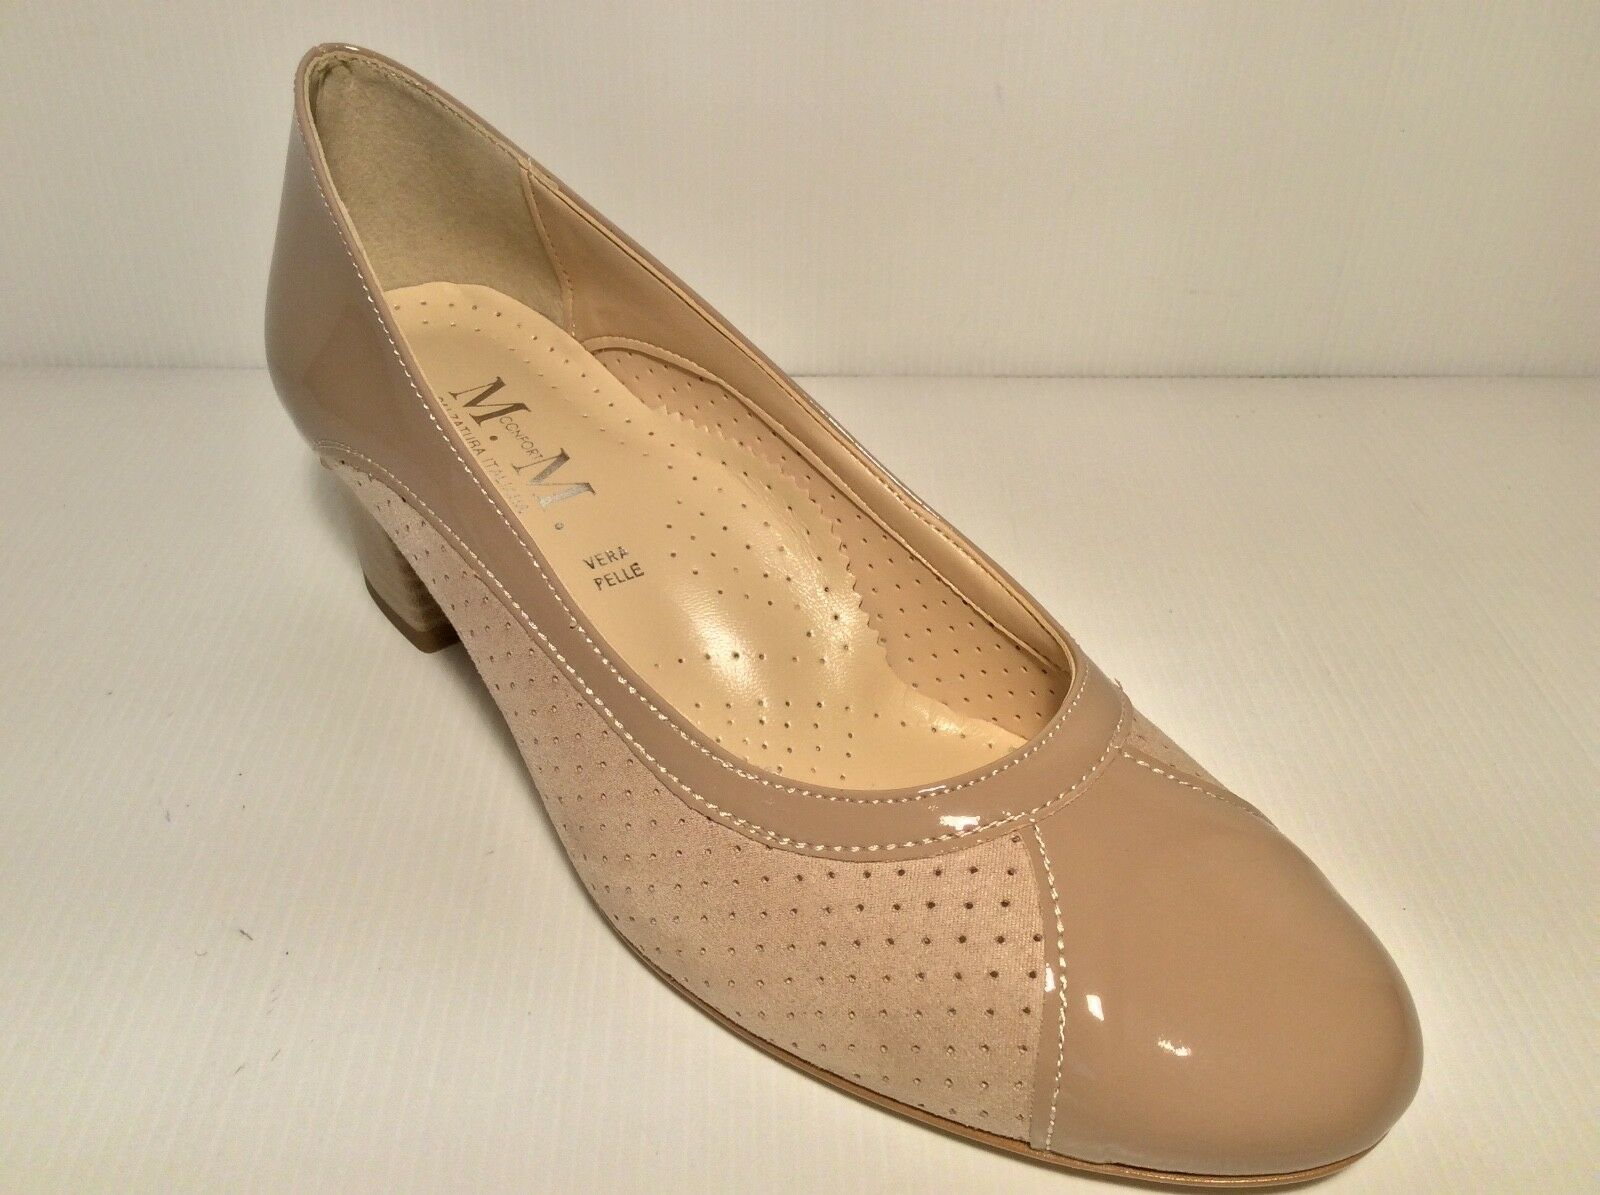 SCARPE DECOLTE' COL DONNA MM CONFORT 418 COL DECOLTE' TAUPE  MADE IN ITALY TACCO 40 7b2616